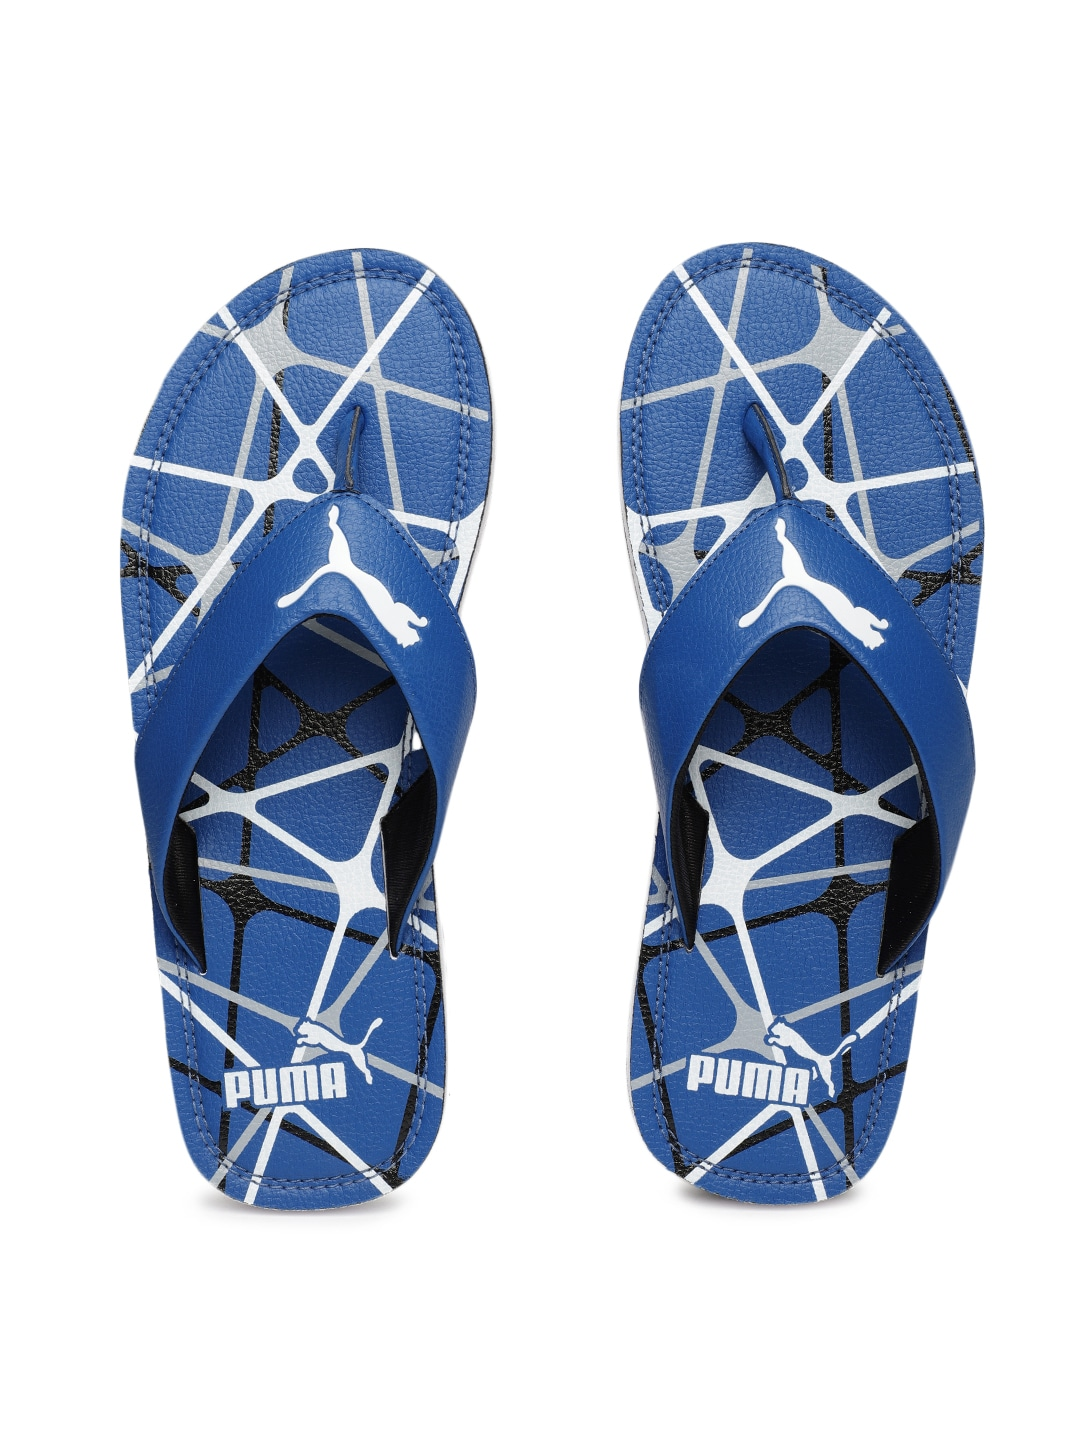 078183c0df10 Puma And Nike Flip Flops - Buy Puma And Nike Flip Flops online in India